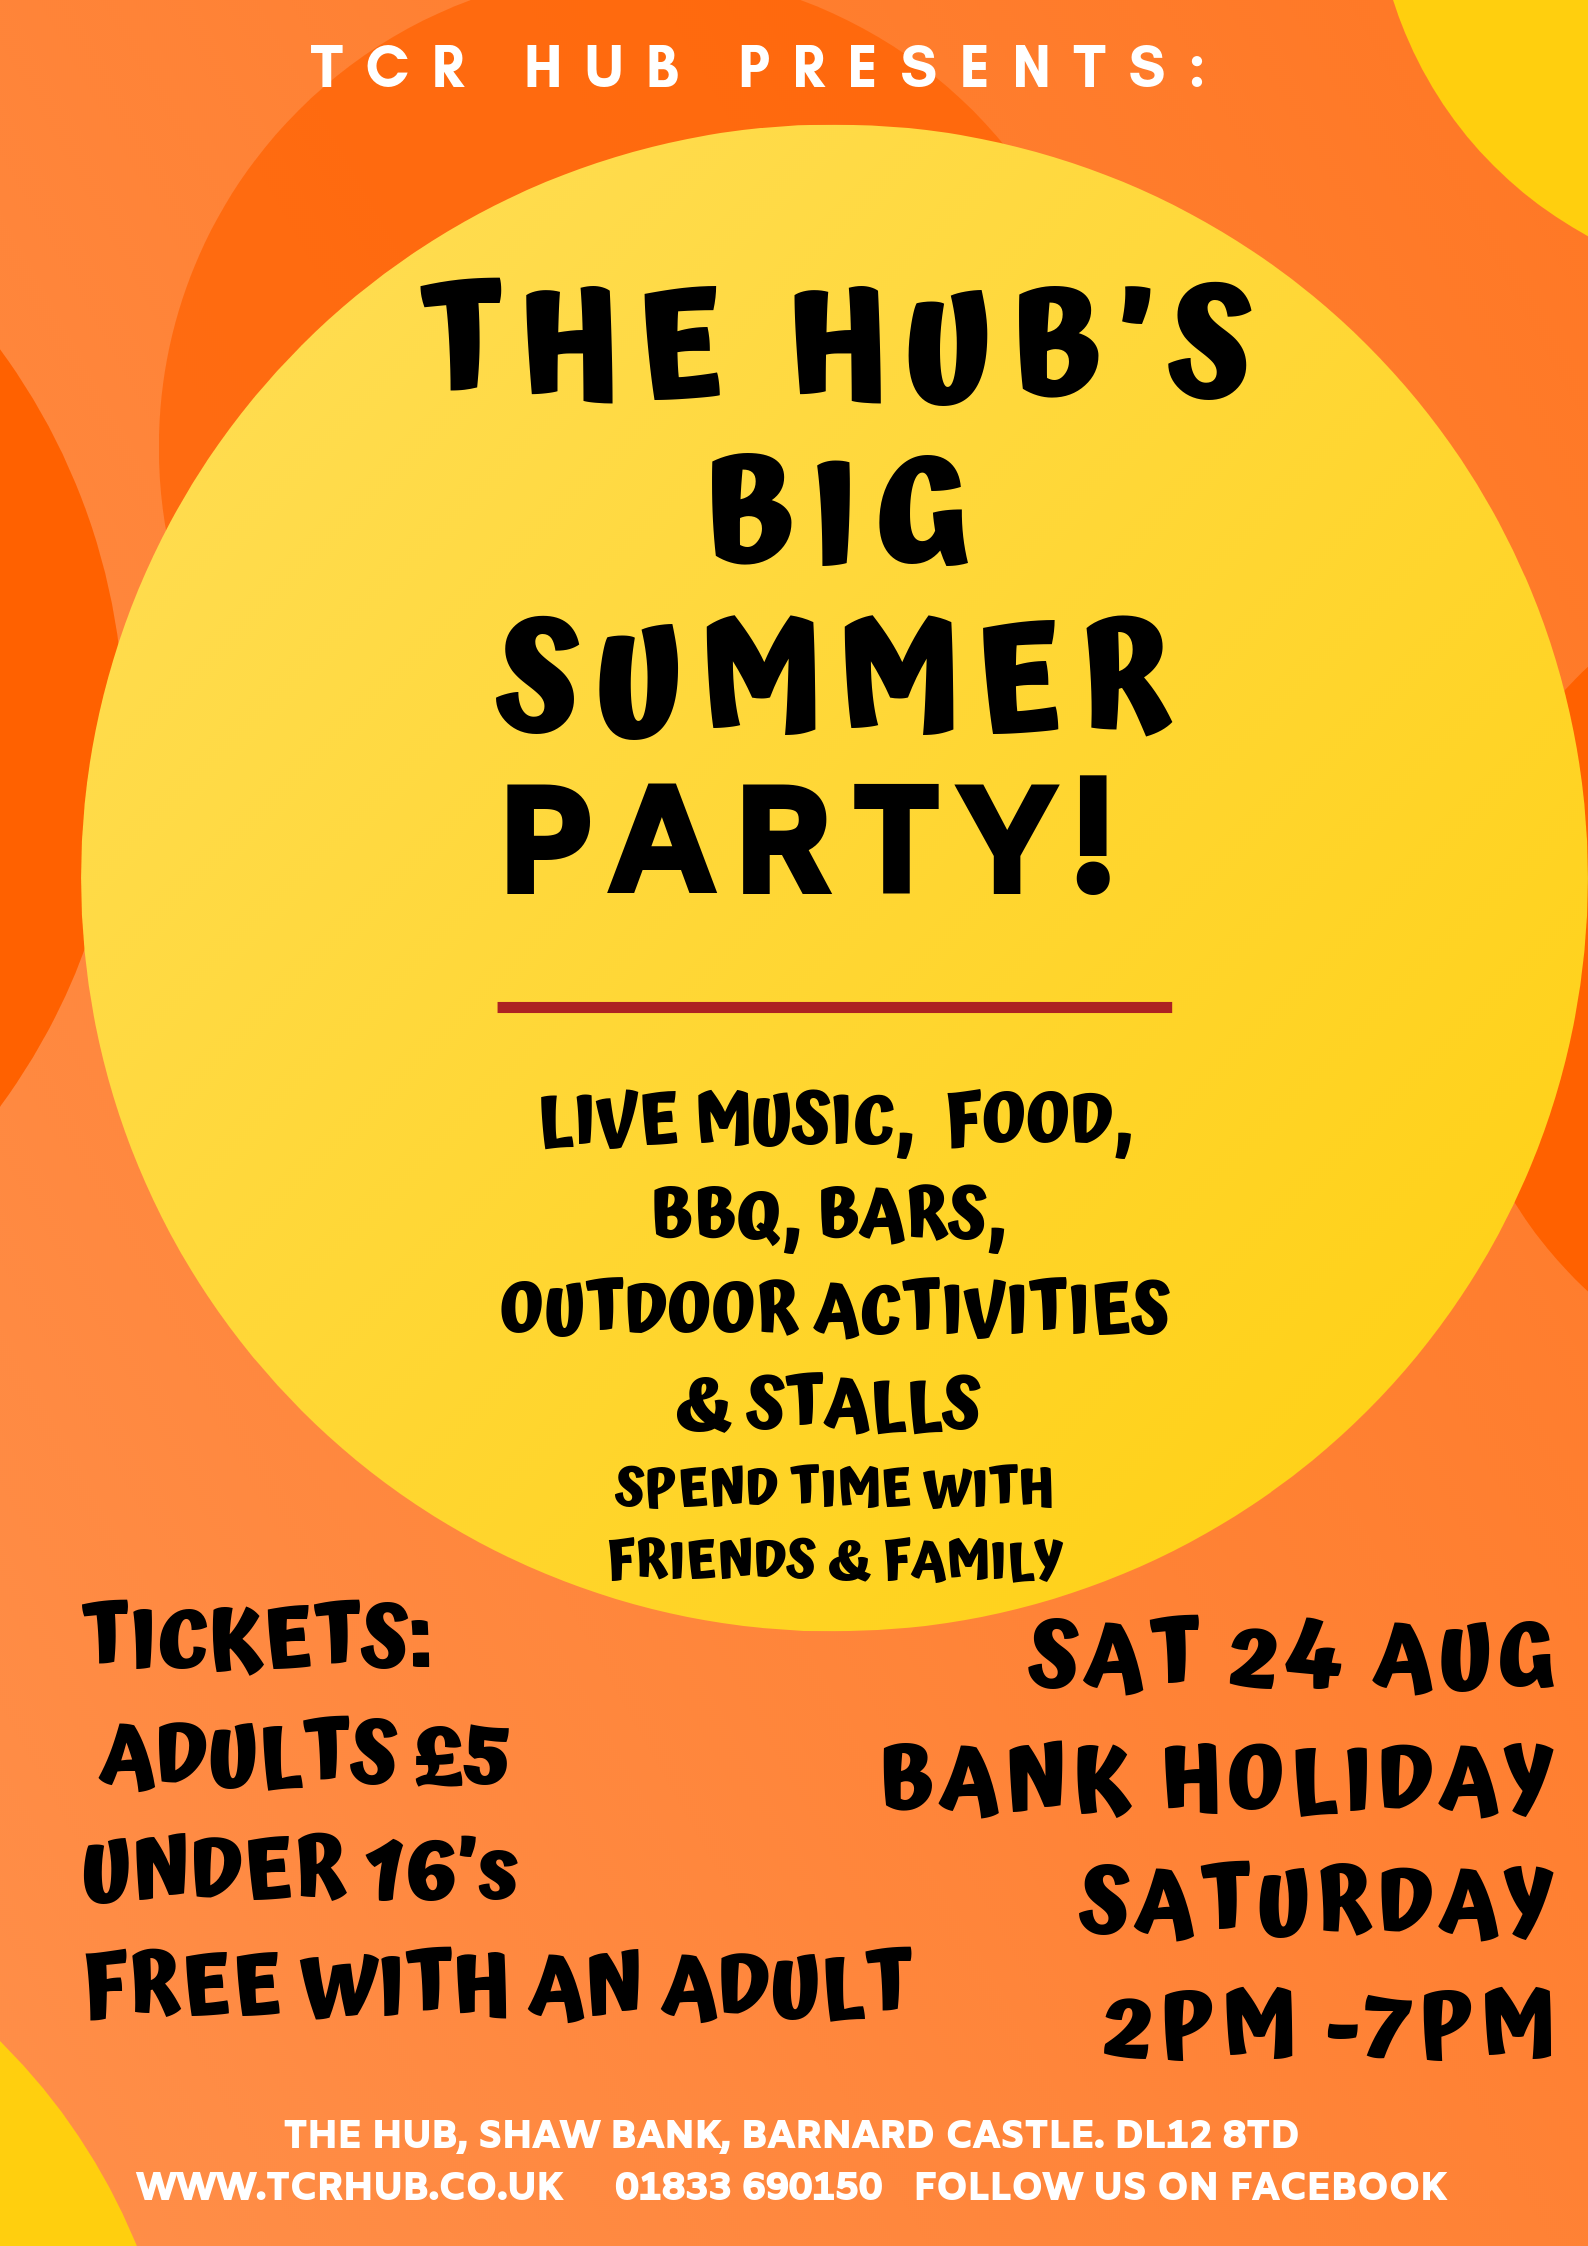 The Hub's Big Summer Party! 🎉